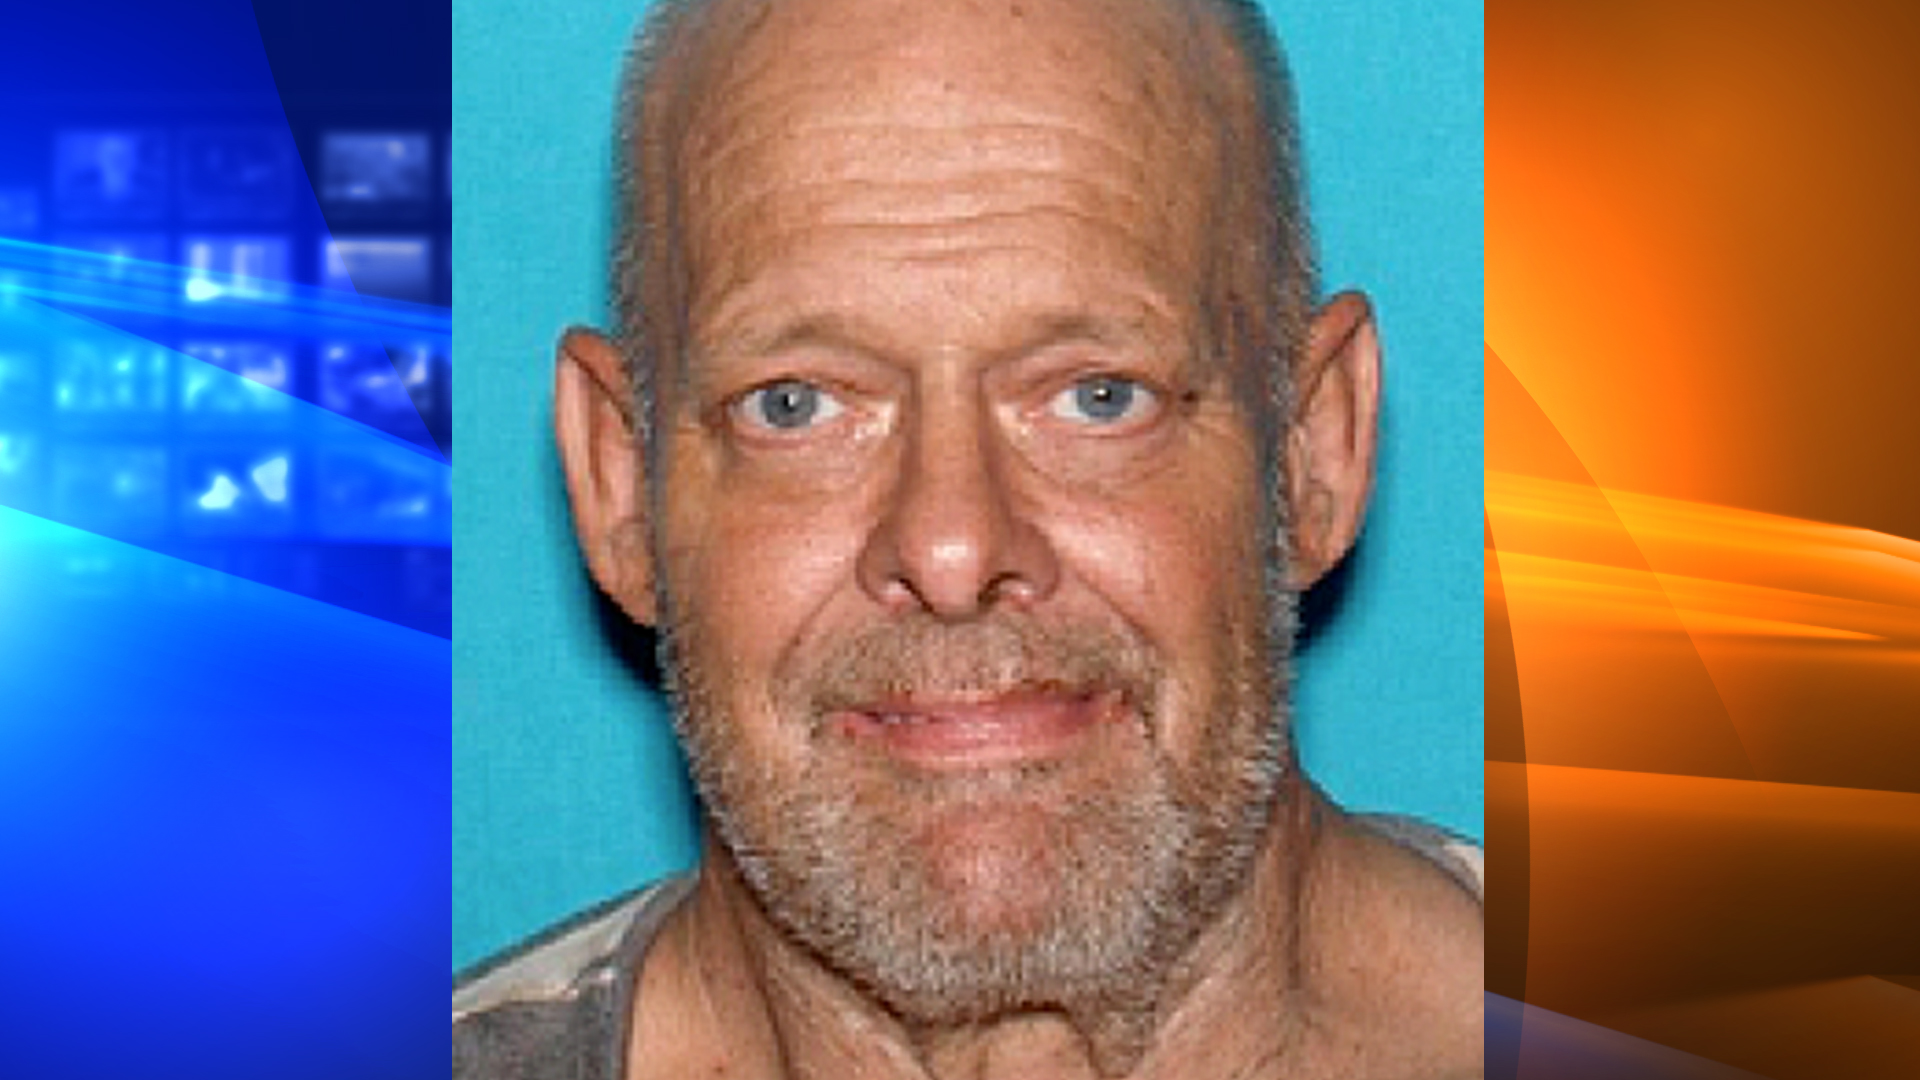 Bruce Paddock is seen in a photo provided by the Los Angeles Police Department.